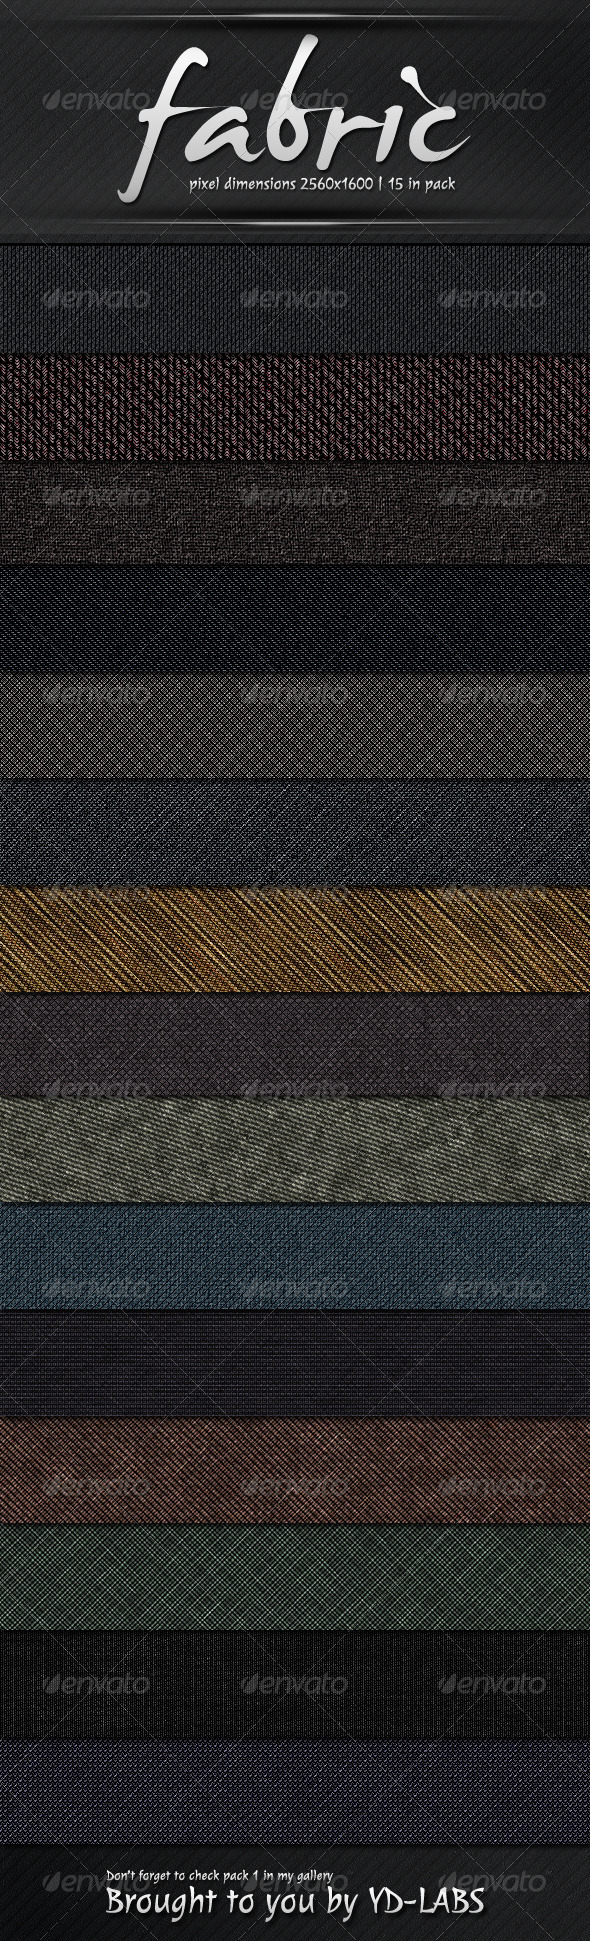 Fabric Pack 2